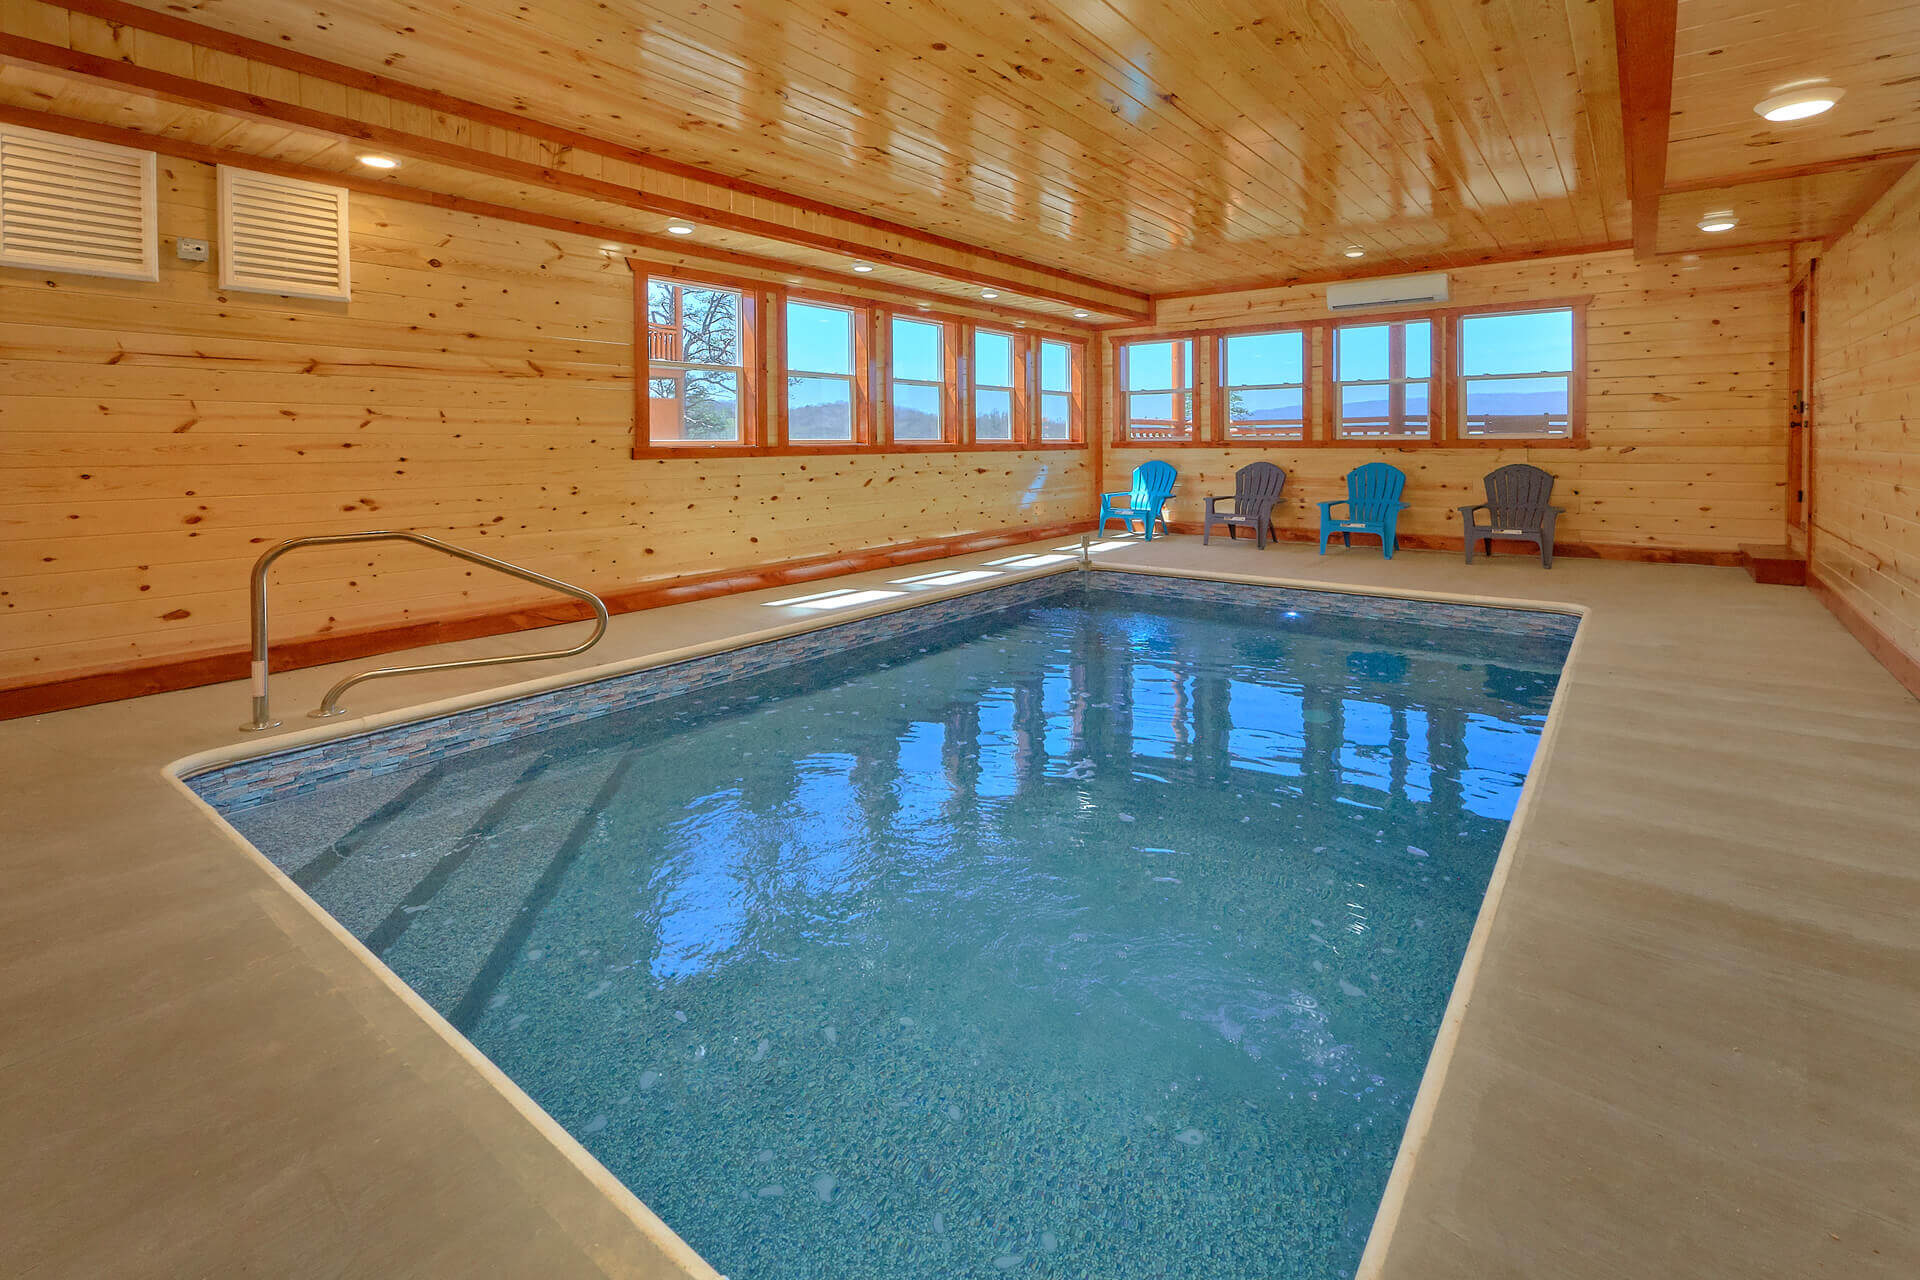 The Ultimate Indoor Pool Cabin